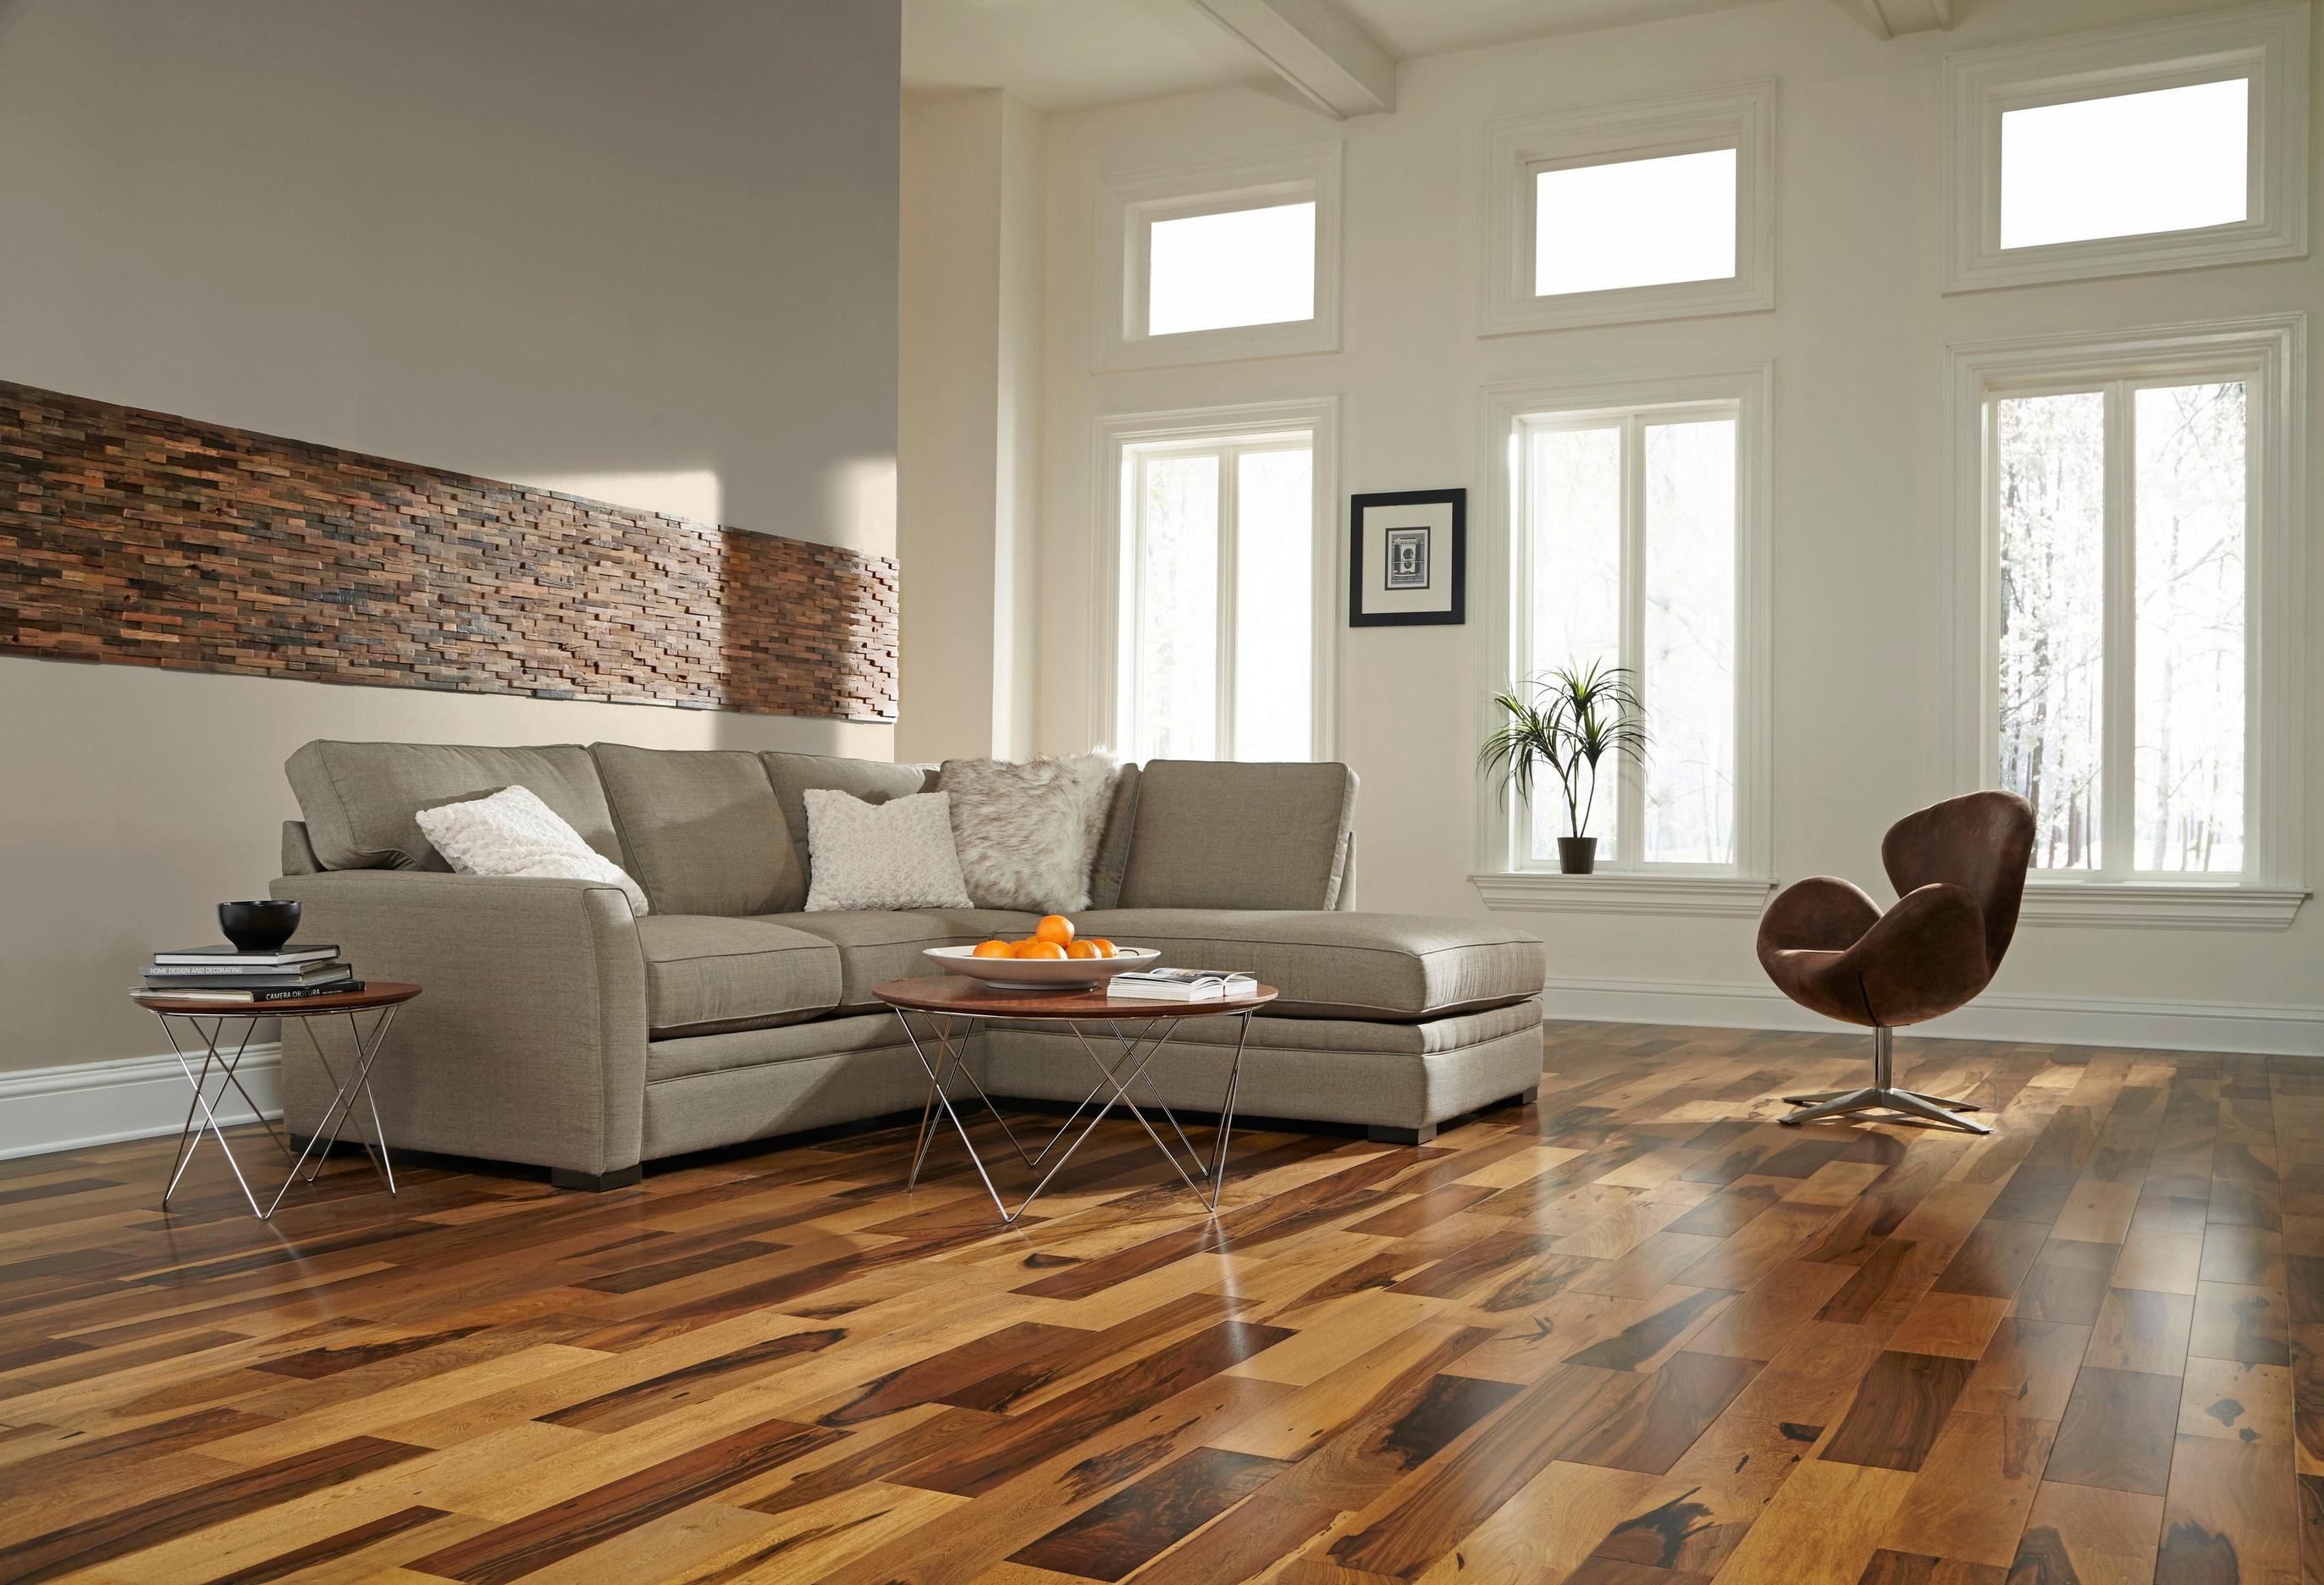 lookout walden pecan vinyl floor more pinterest ridge and lvt hardwood sale pin point flooring explore